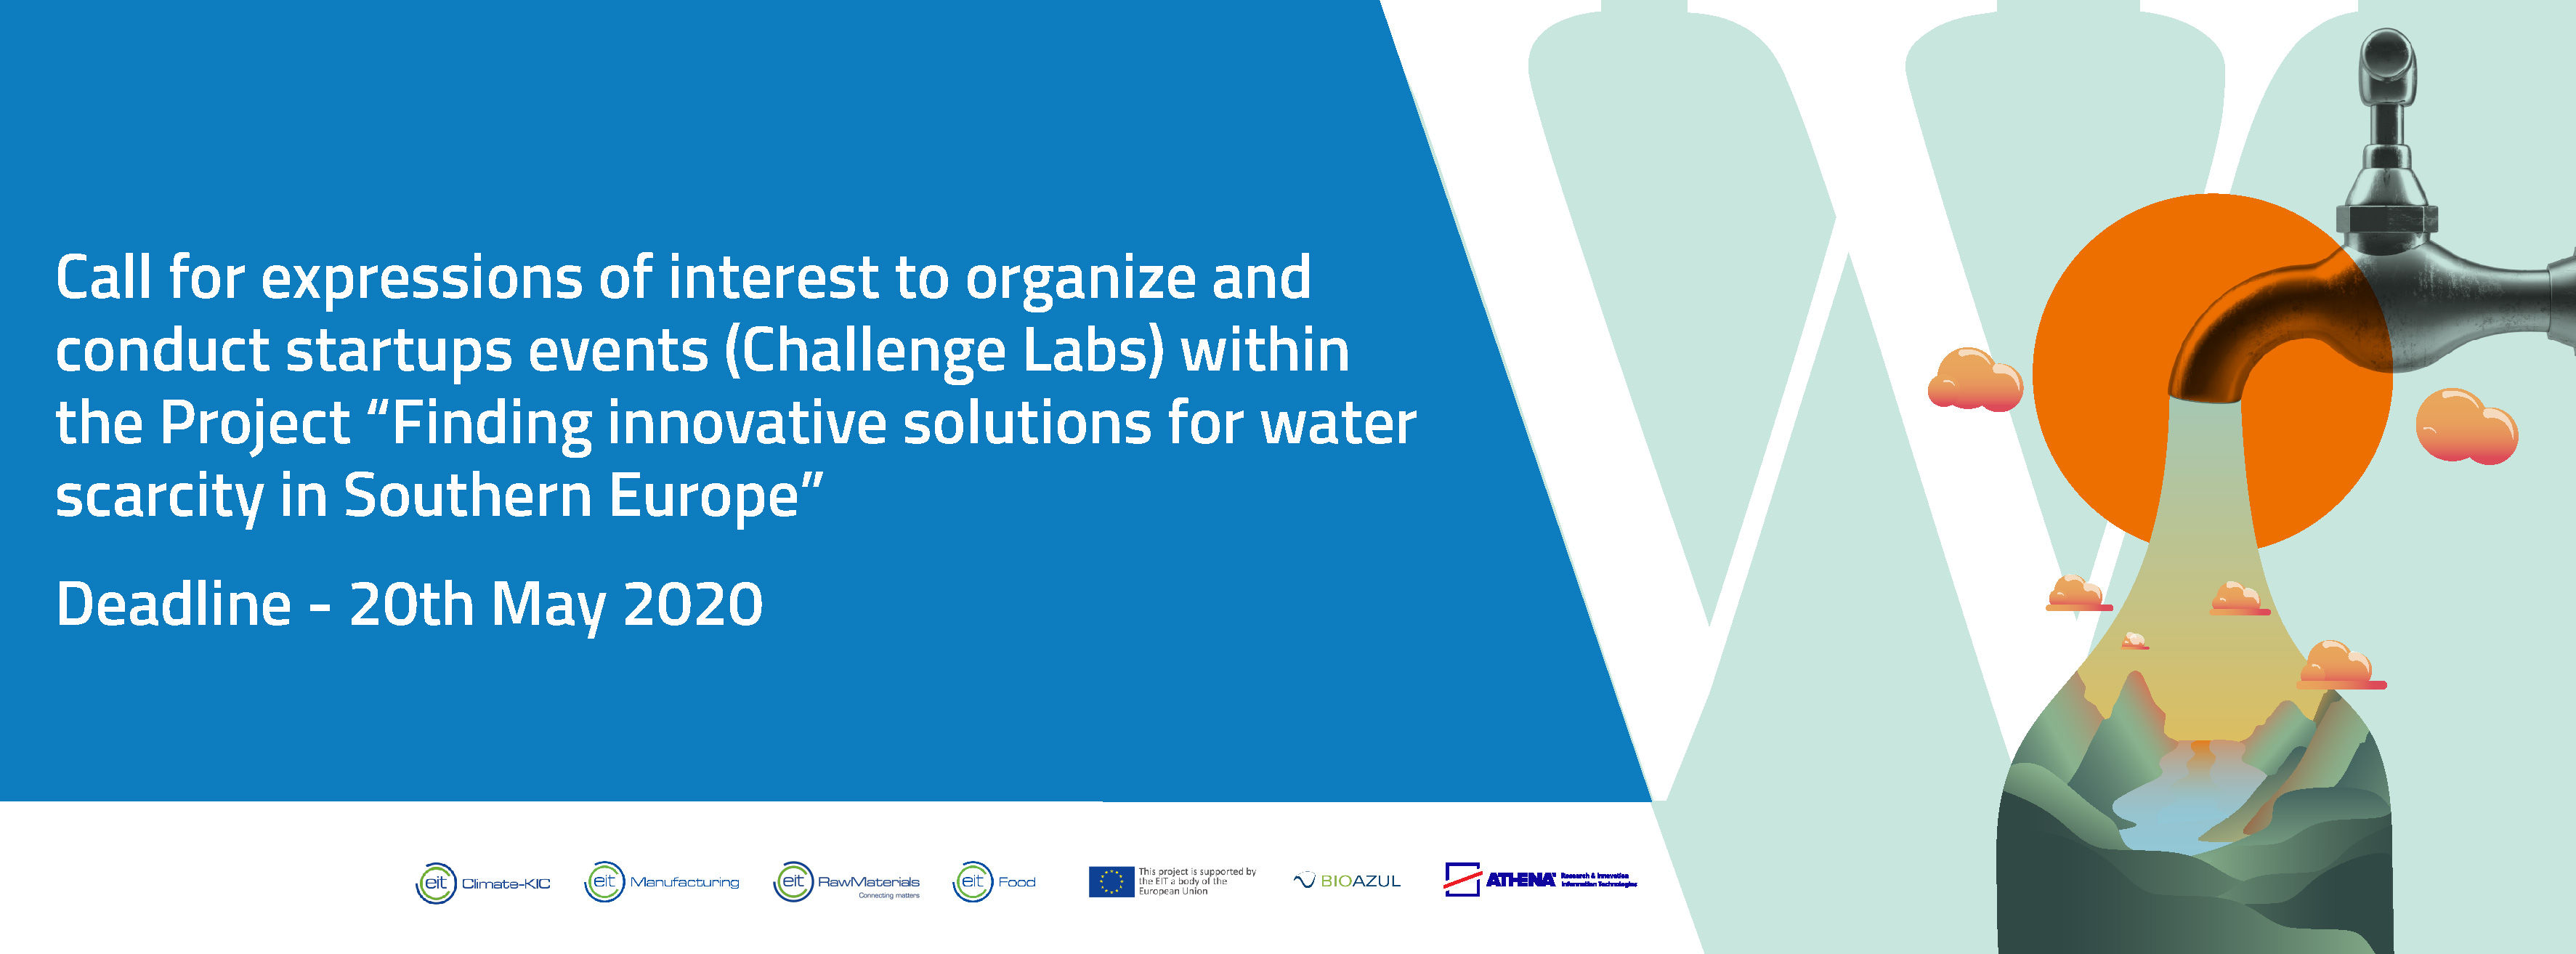 Call for expressions of interest to organise and conduct startup events to find innovative solutions for water scarcity